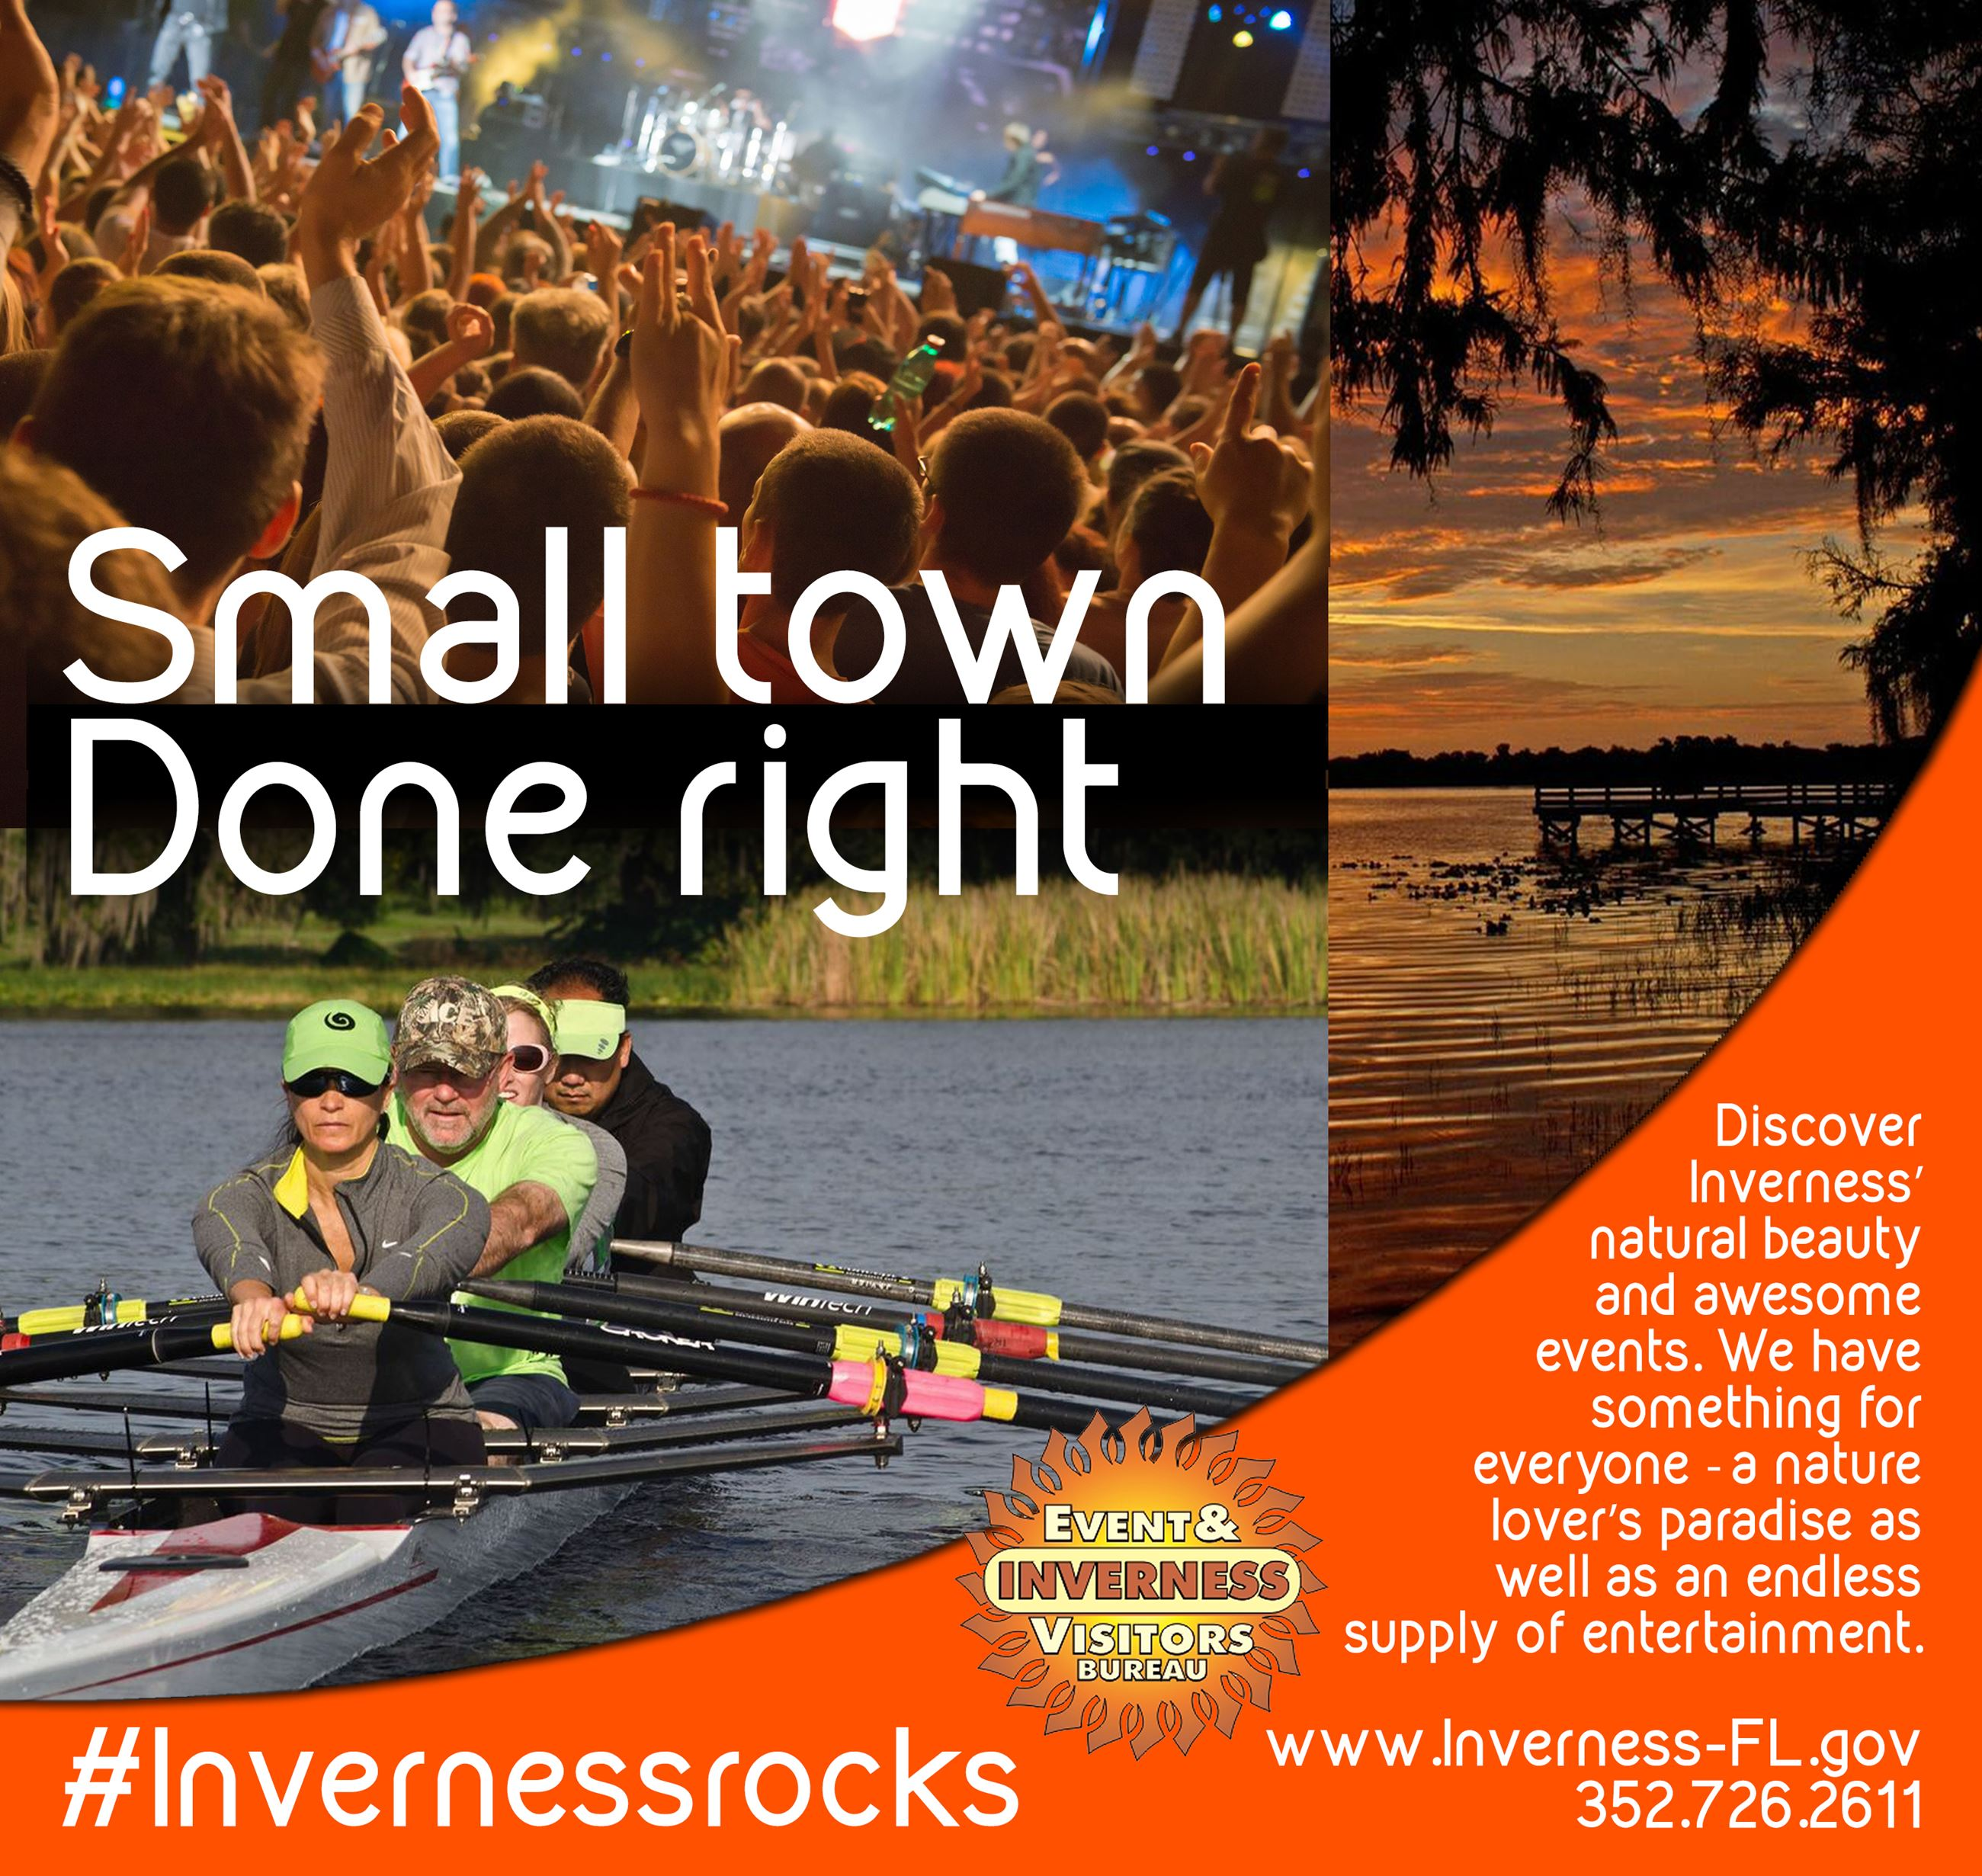 Visit Inverness Ad-DISCOVER